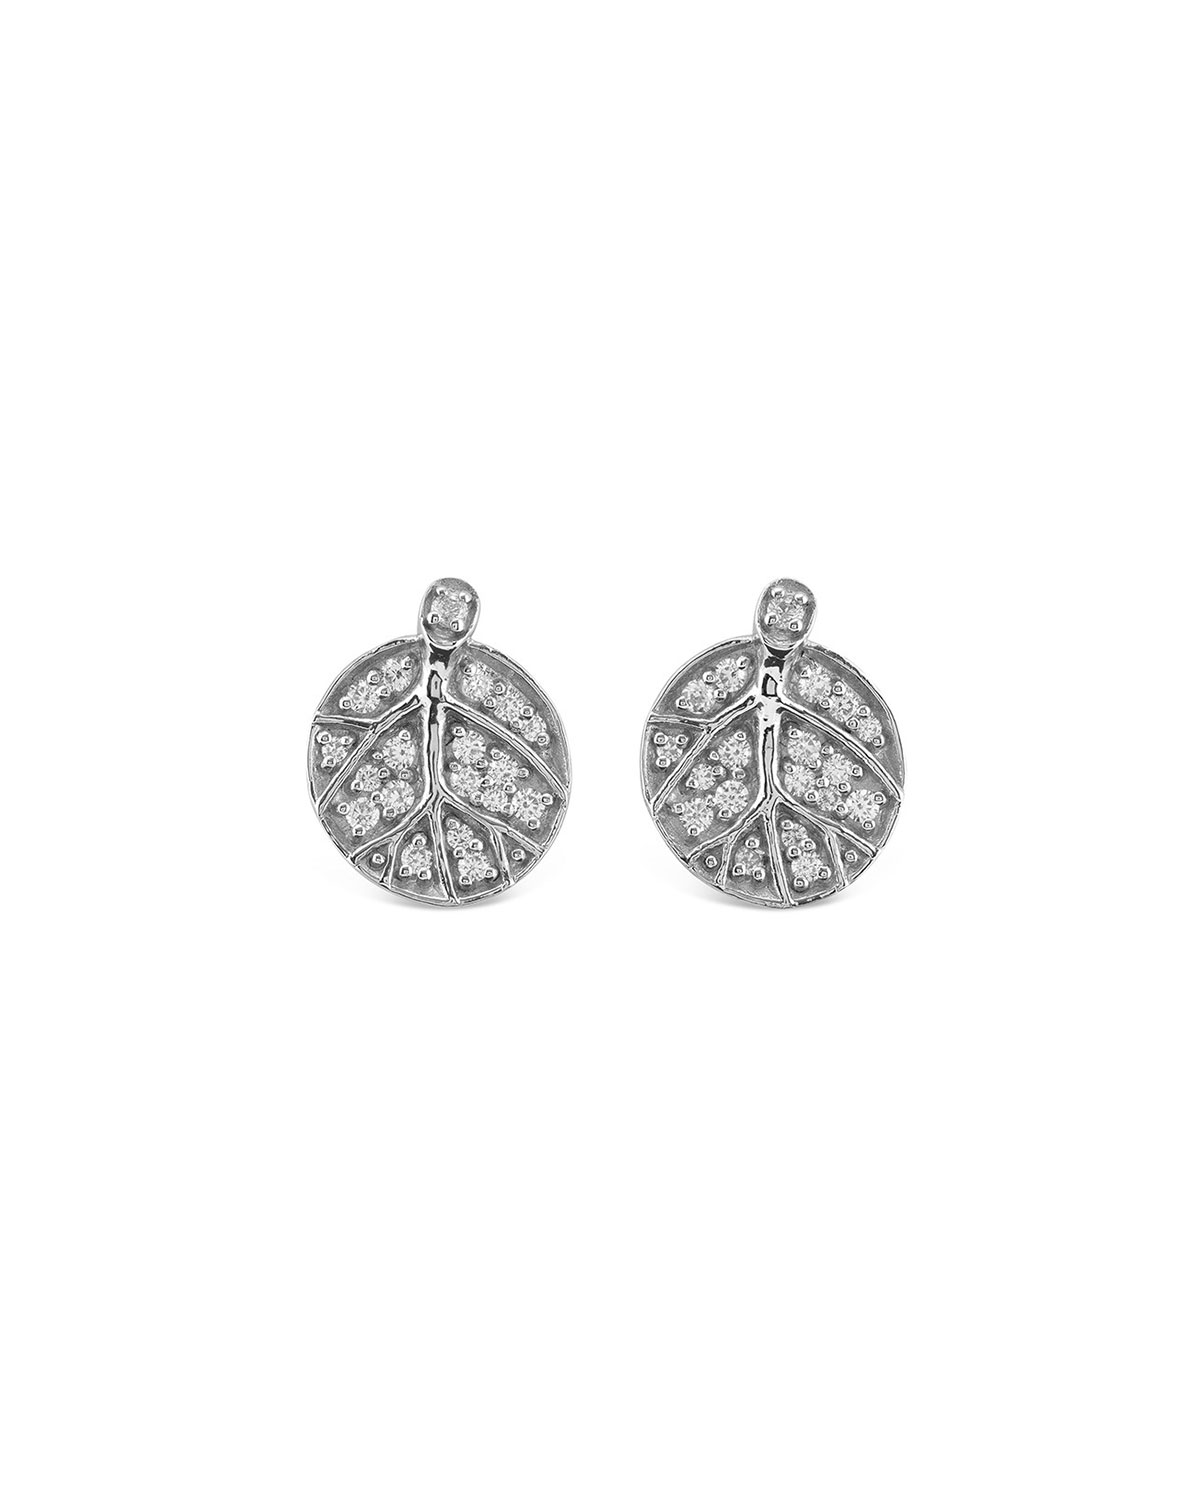 Michael Aram Botanical Leaf Diamond Stud Earrings, 13mm